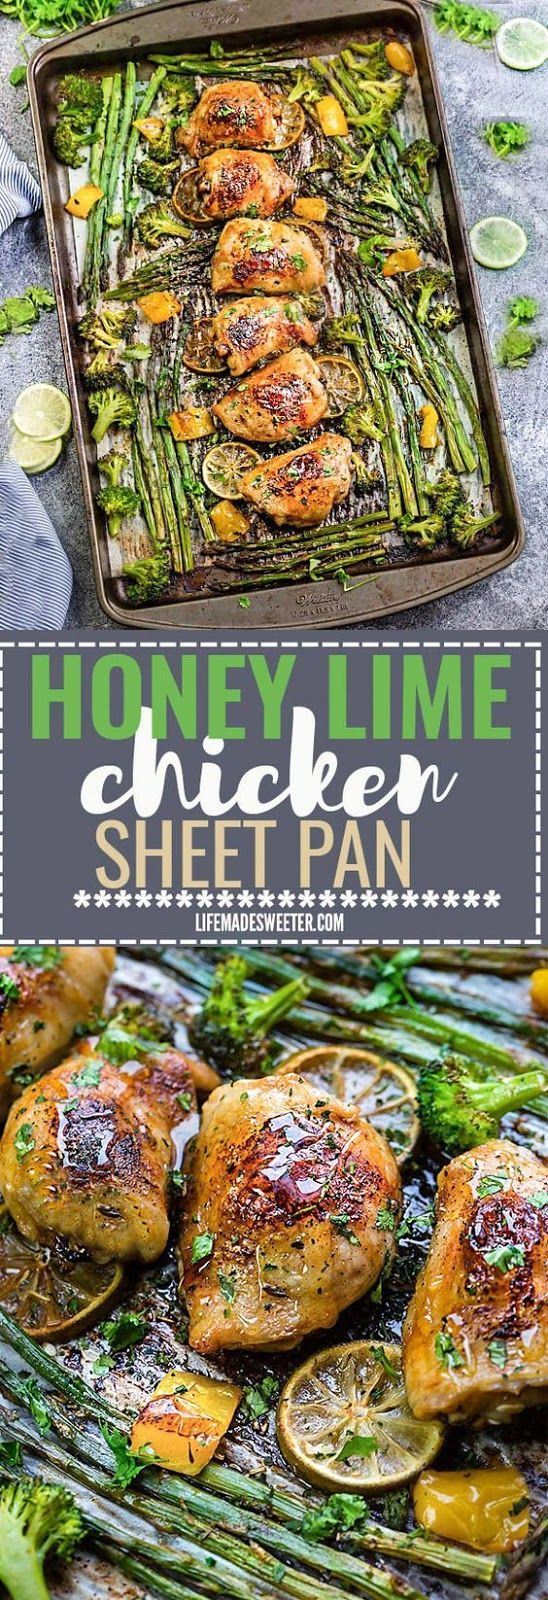 HONEY LIME CHICKEN SHEET PAN WITH ASPARAGUS - Cooking Daily #honeylimechicken HONEY LIME CHICKEN SHEET PAN WITH ASPARAGUS - Cooking Daily #honeylimechicken